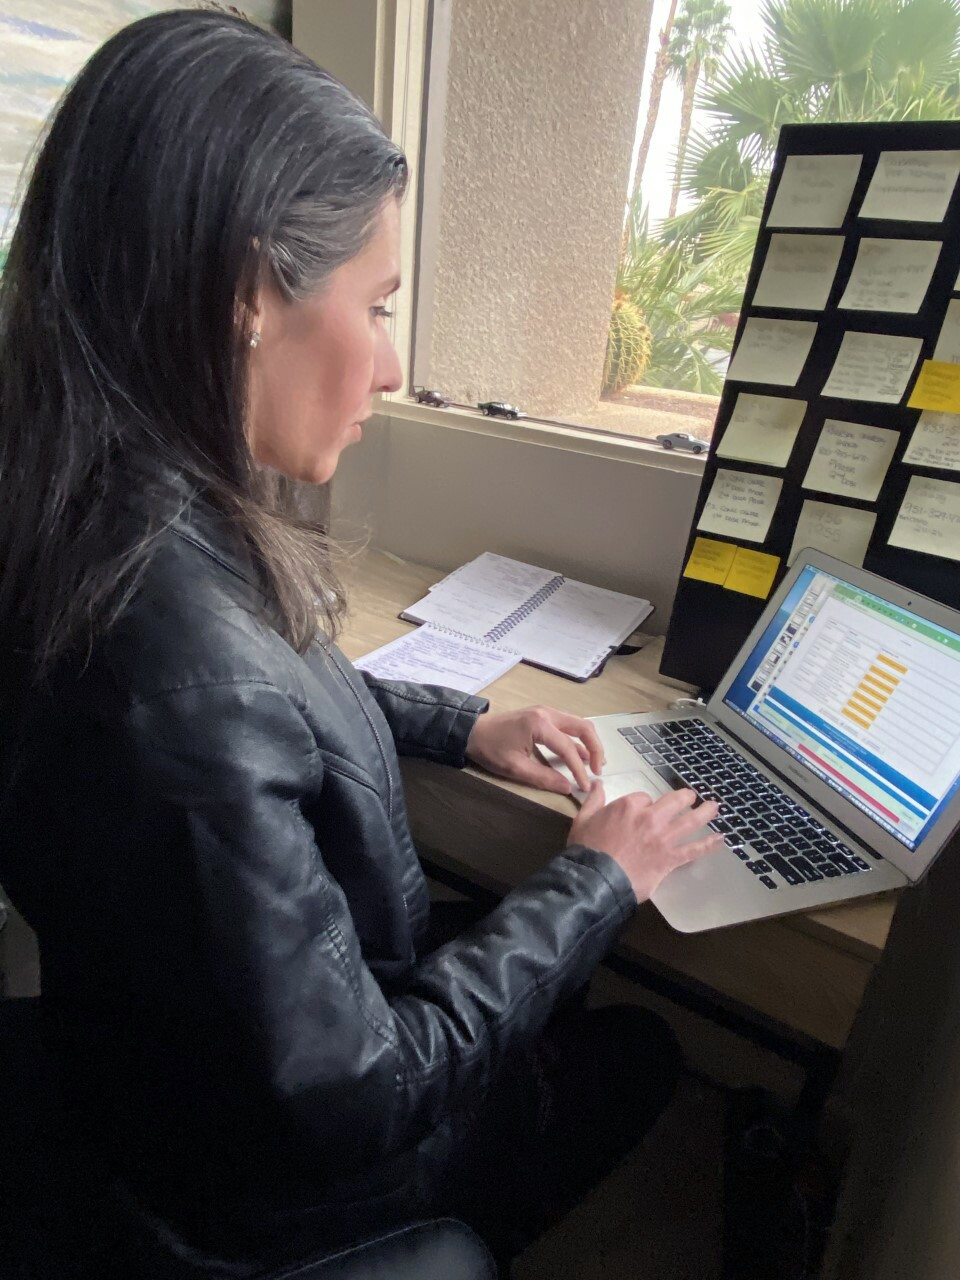 A woman in a black jacket and long gray hair types on a laptop.